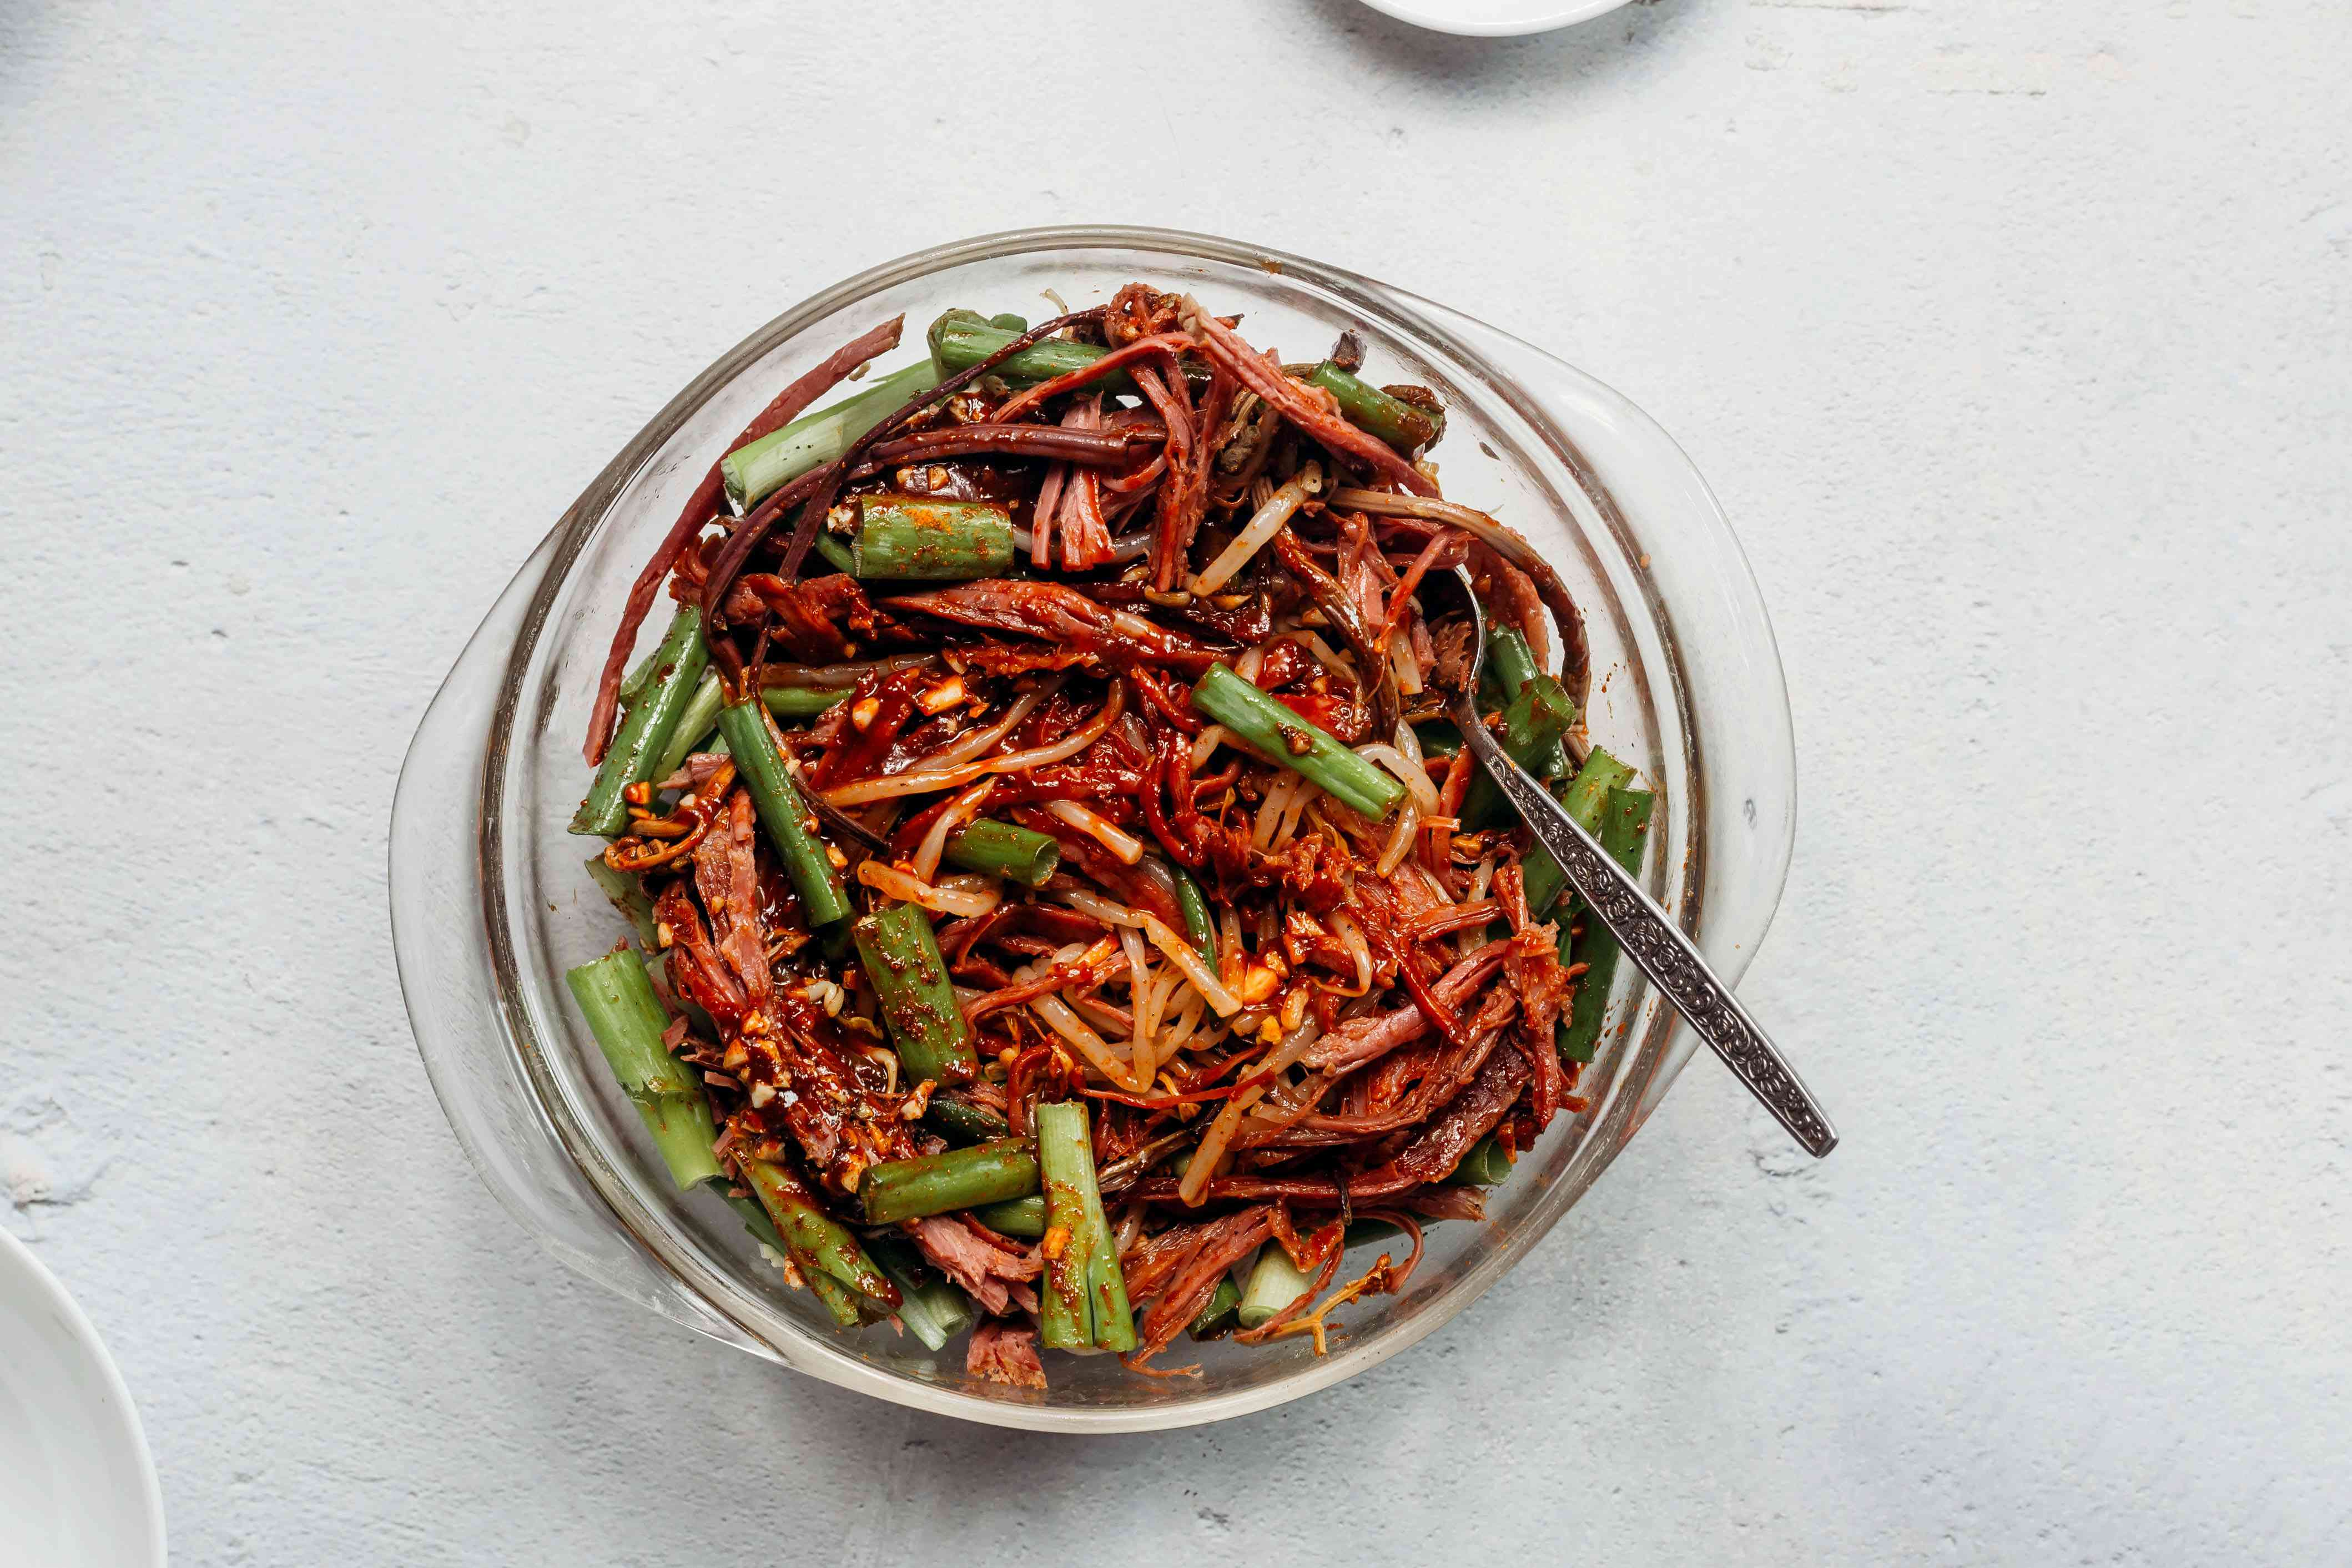 Seasoned beef and vegetables in a bowl